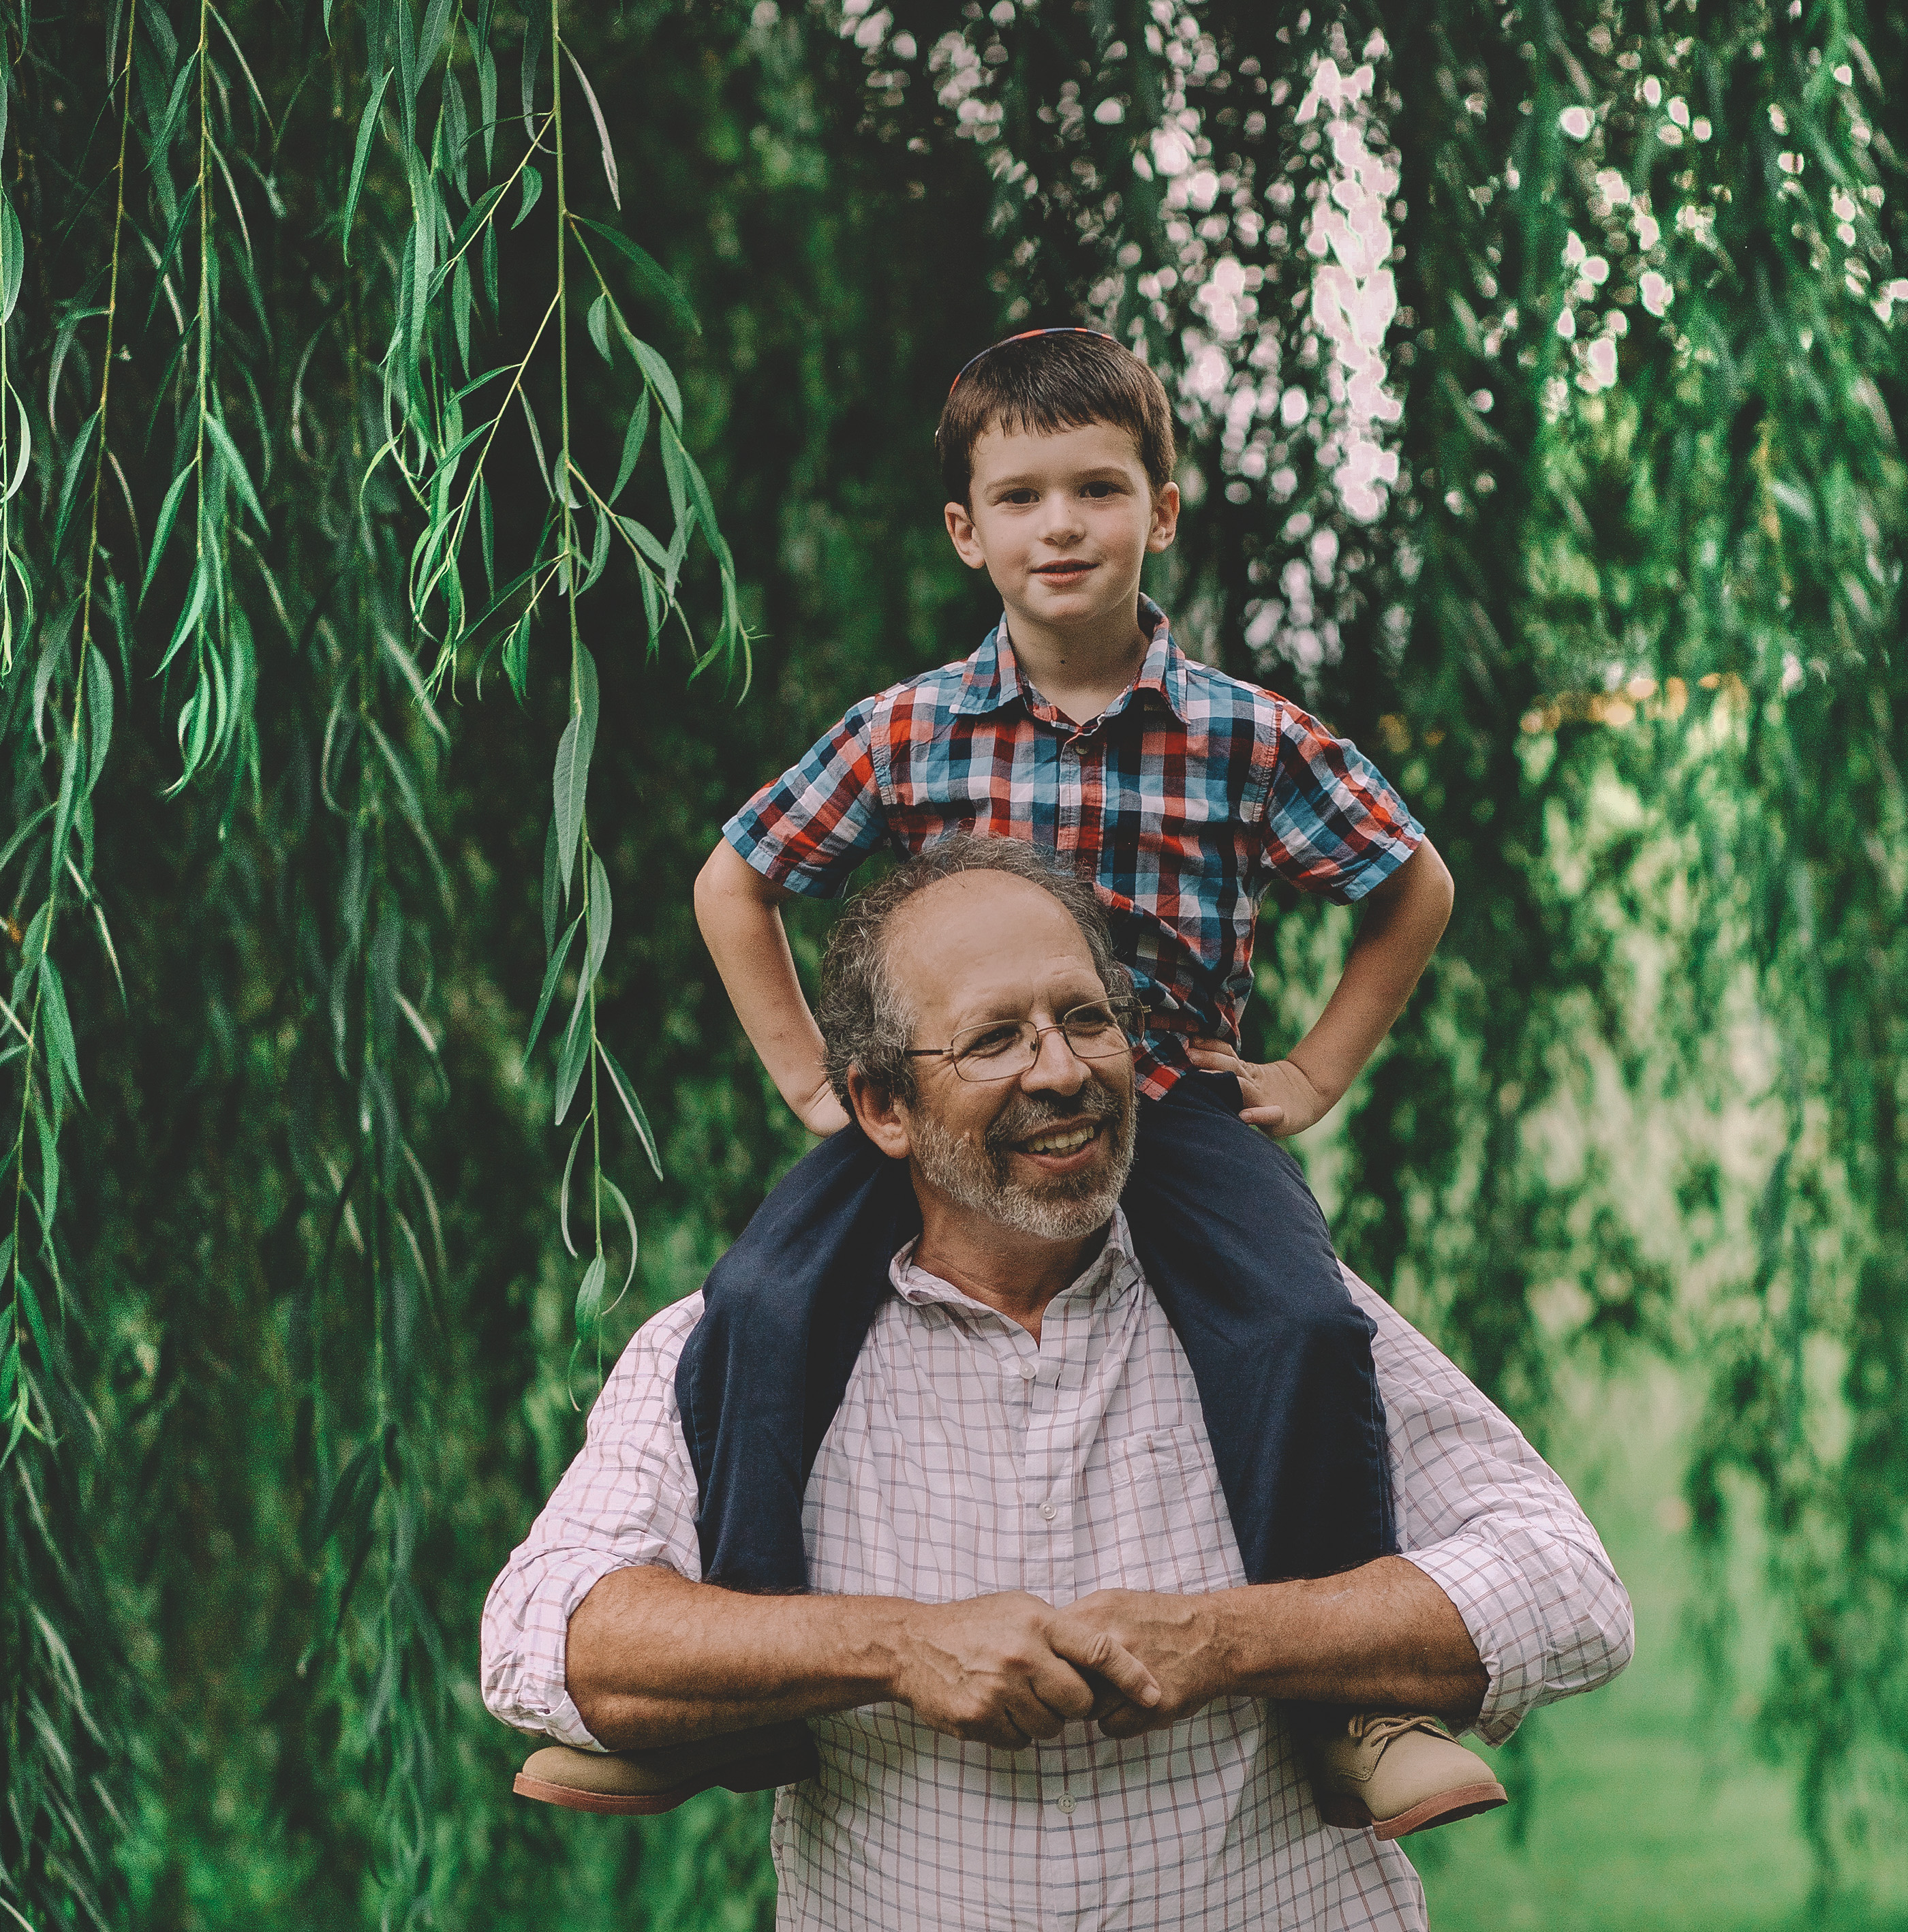 IMG_9684CoughlinFamilySession2017